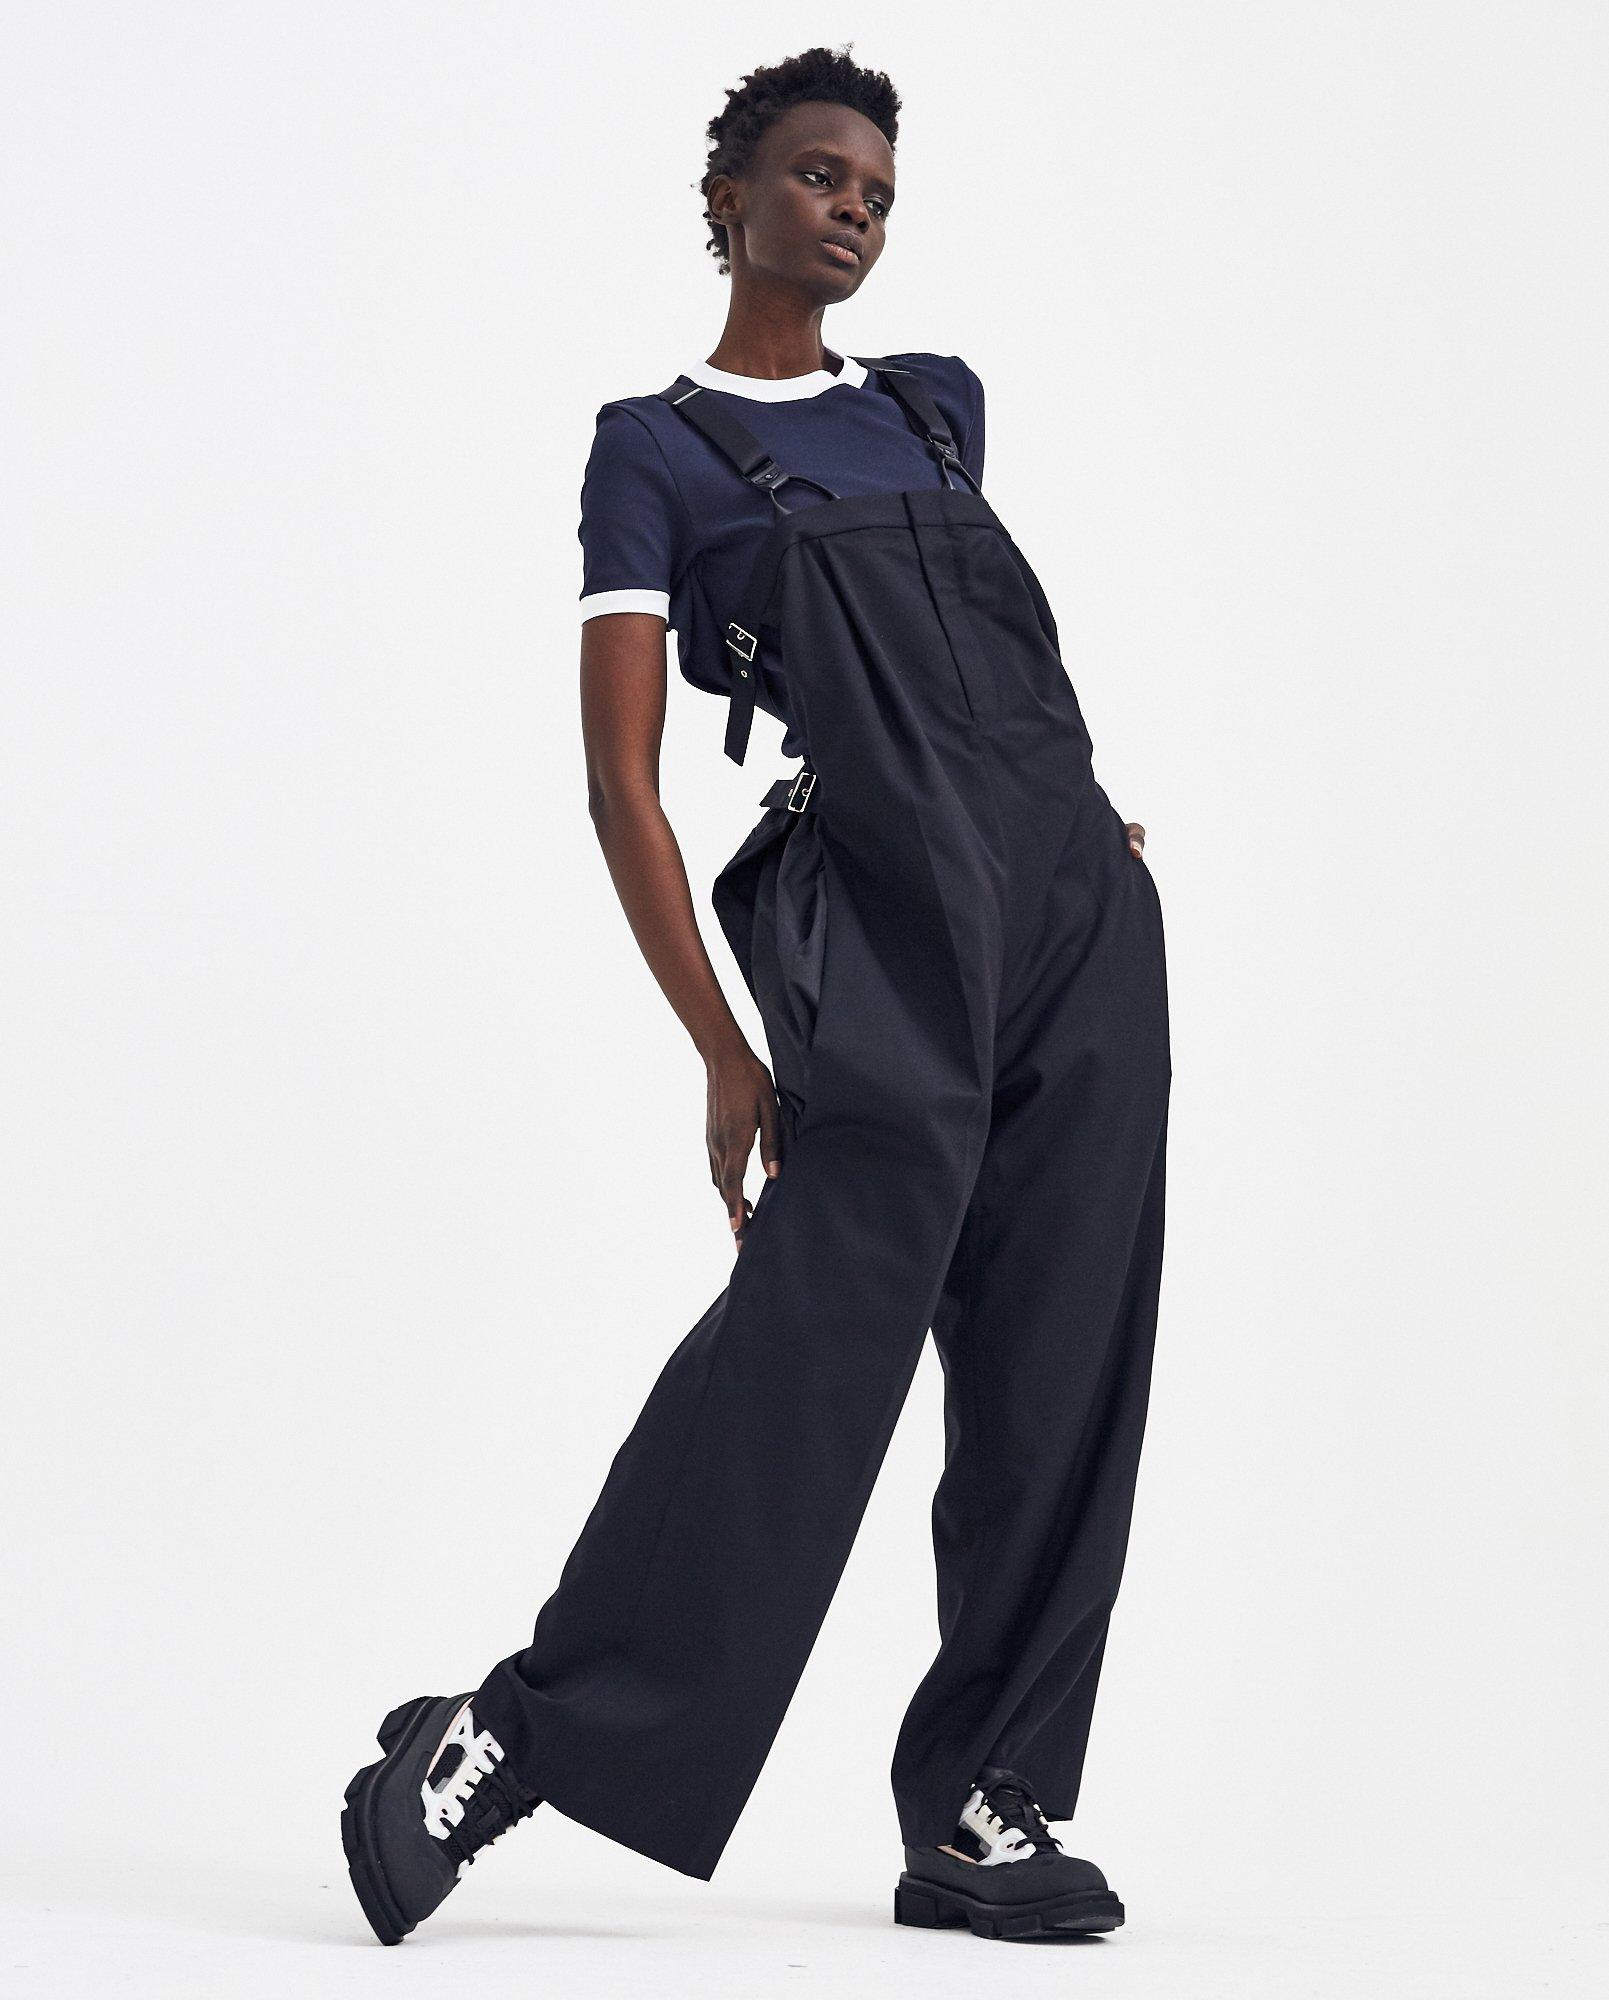 color brilliancy fast delivery complete in specifications Noir Kei Ninomiya Taffeta Dungaree Trousers in Blue - Lyst